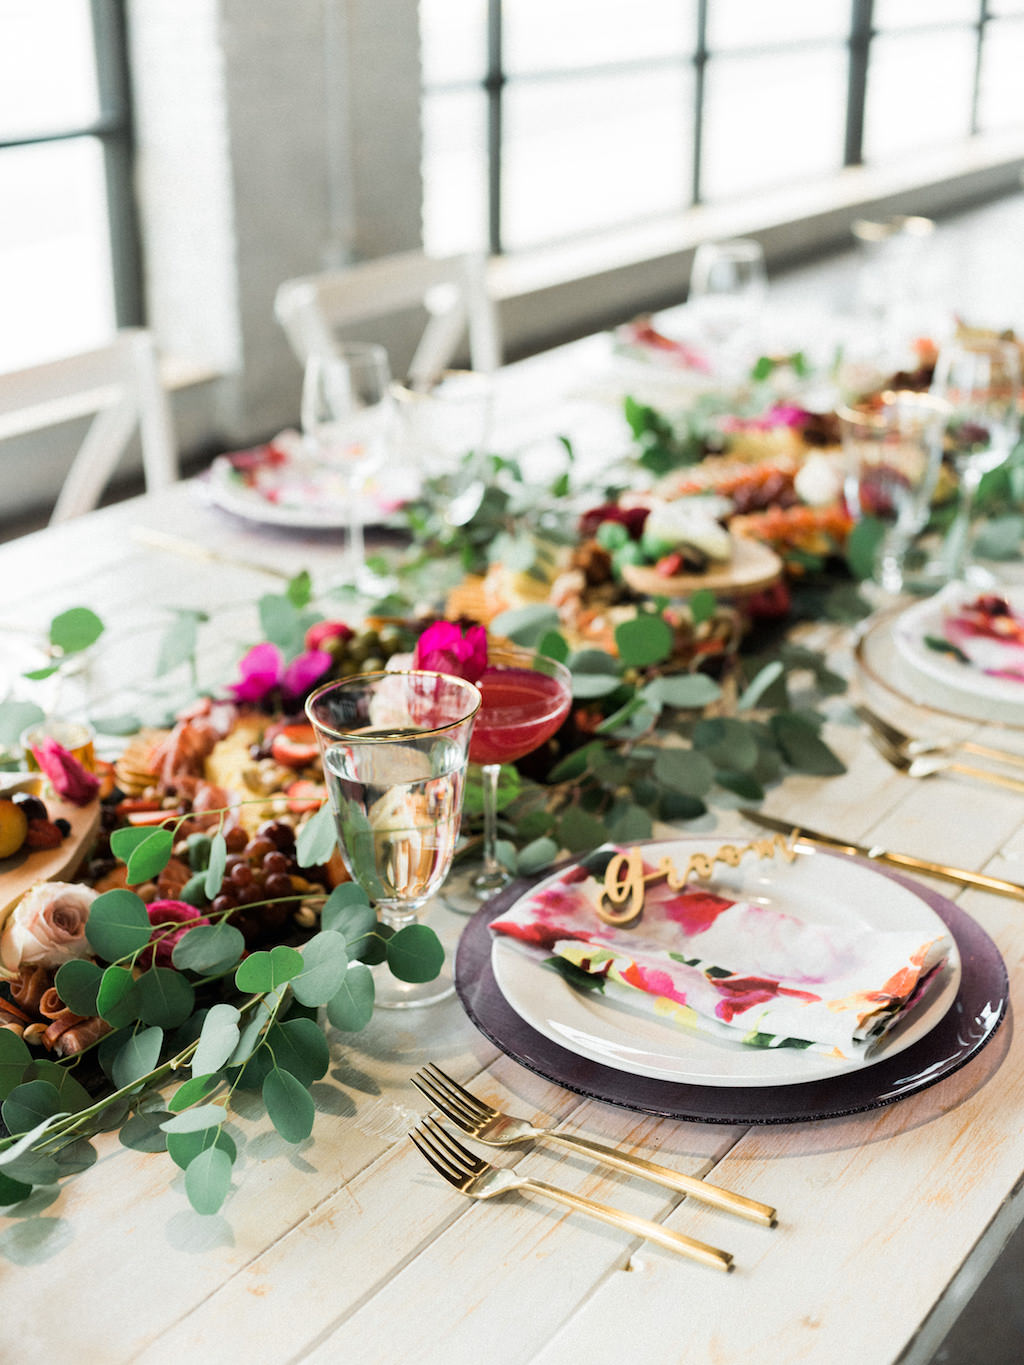 Modern Fuchsia Wedding Reception Table with Charcuterie Board with Greenery, Wooden Table, White Cross Back Chairs, Gold Flatware   Lakeland Florida Wedding Caterer Tastes of Tampa Bay   Chair Rentals A Chair Affair   Venue Haus 820